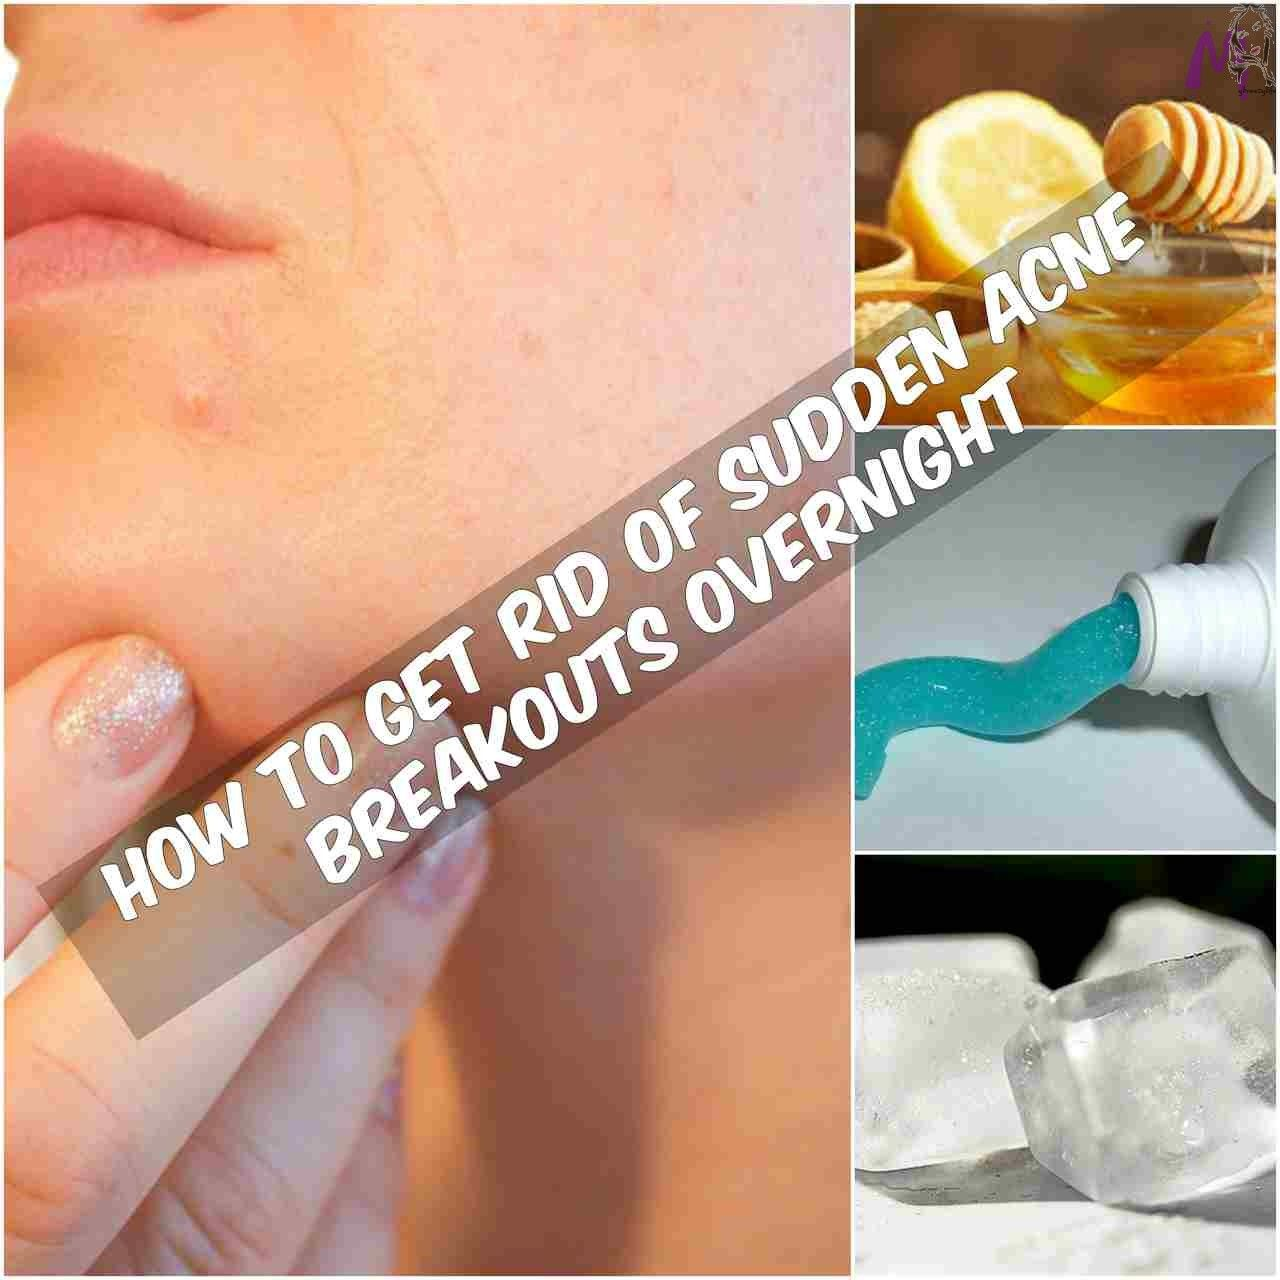 quick acne routine You can never expect the zit to just disappear overnight. There is no magical formula made for it yet. But the good news is there are some easy remedies that can help reduce the swelling and redness in a day's time. The punctured blemish can then be easily concealed and your day is saved. https://www.mybreezylife.com/how-to-get-rid-of-sudden-acne-breakouts-overnight/